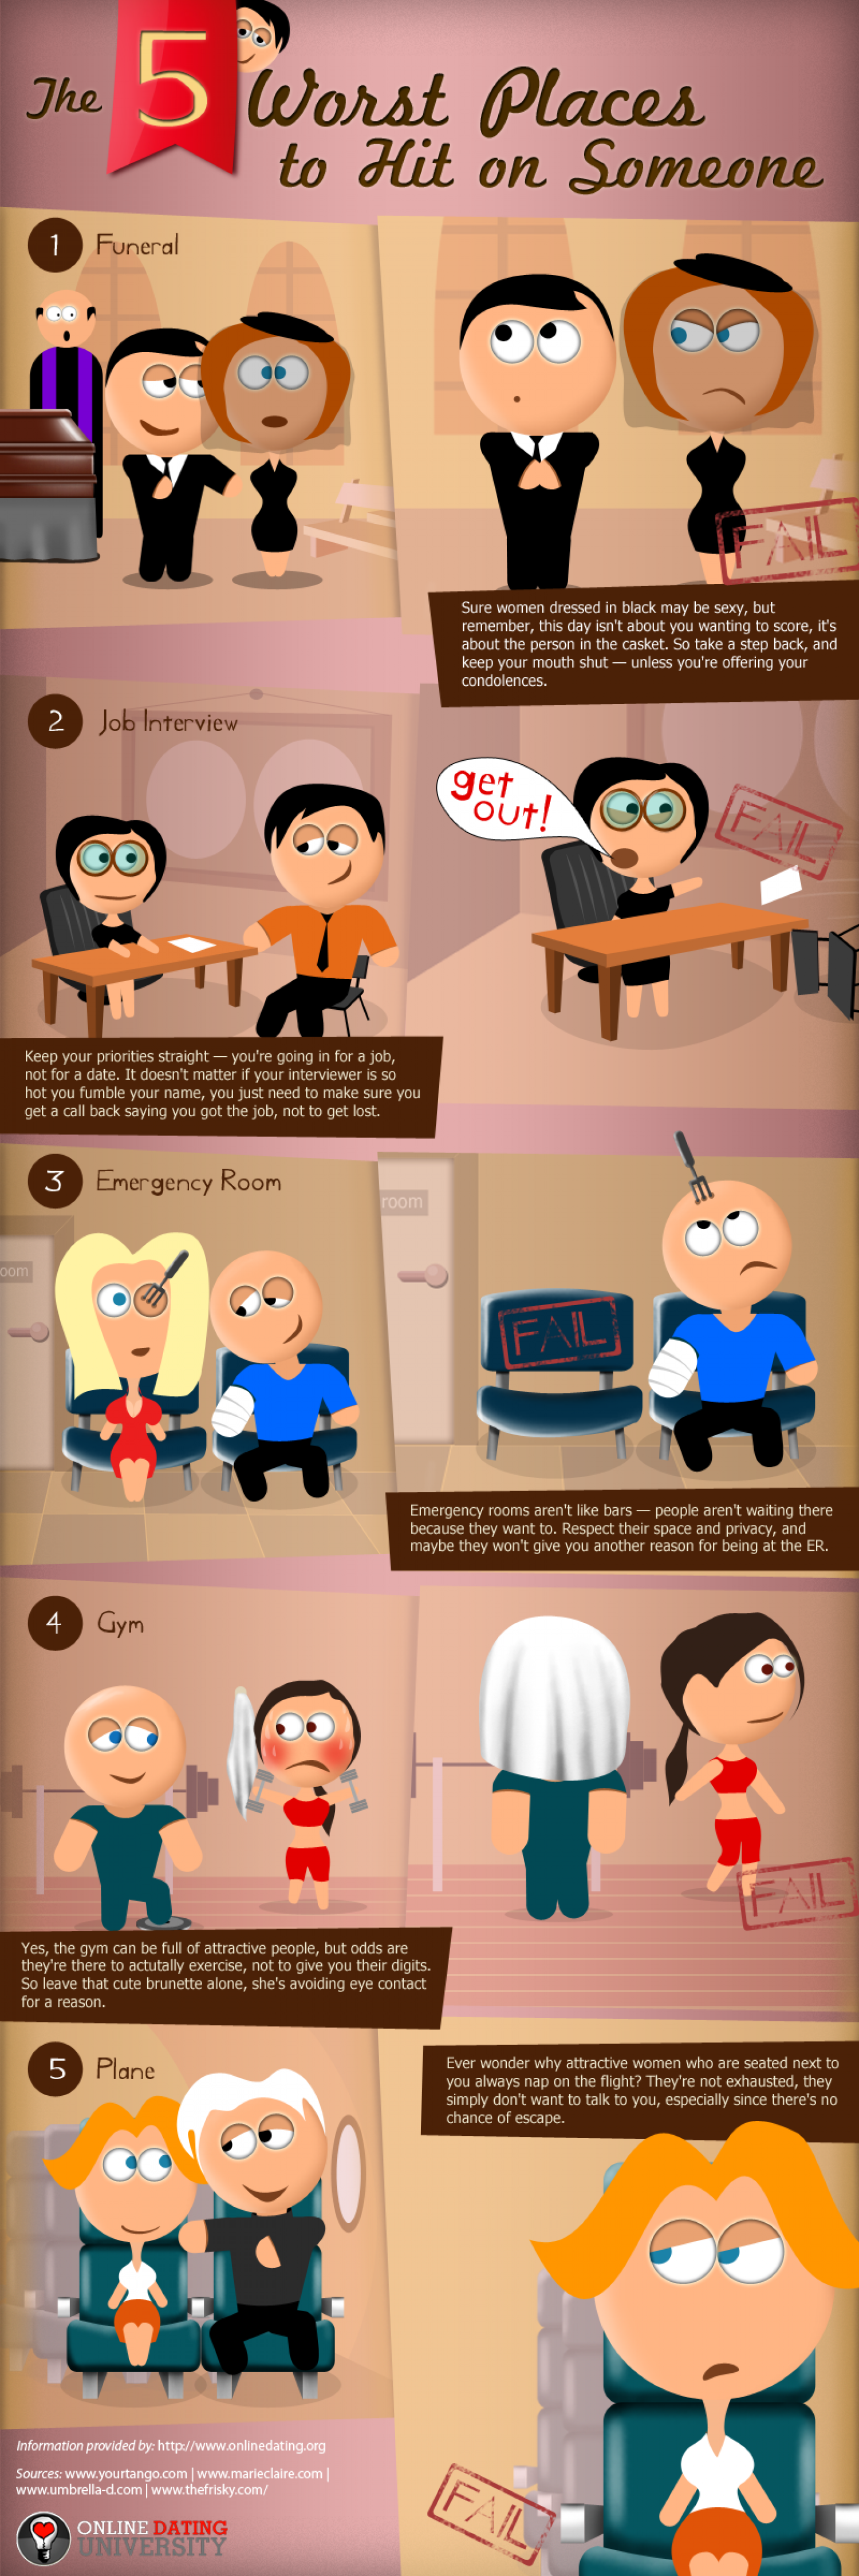 The 5 Worst Places to Hit On Someone Infographic